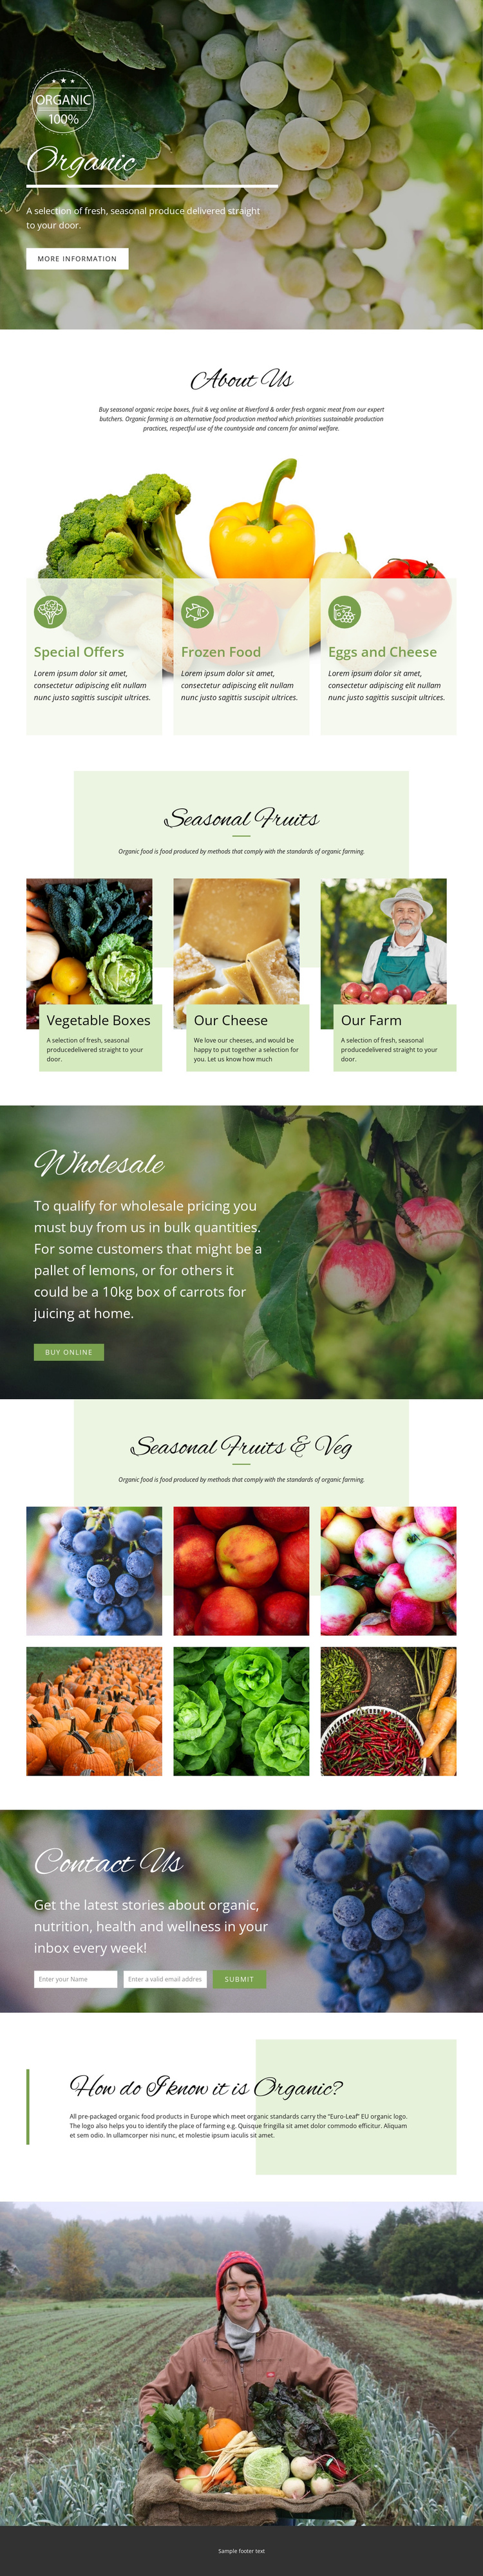 Healthier with organic food Website Builder Software